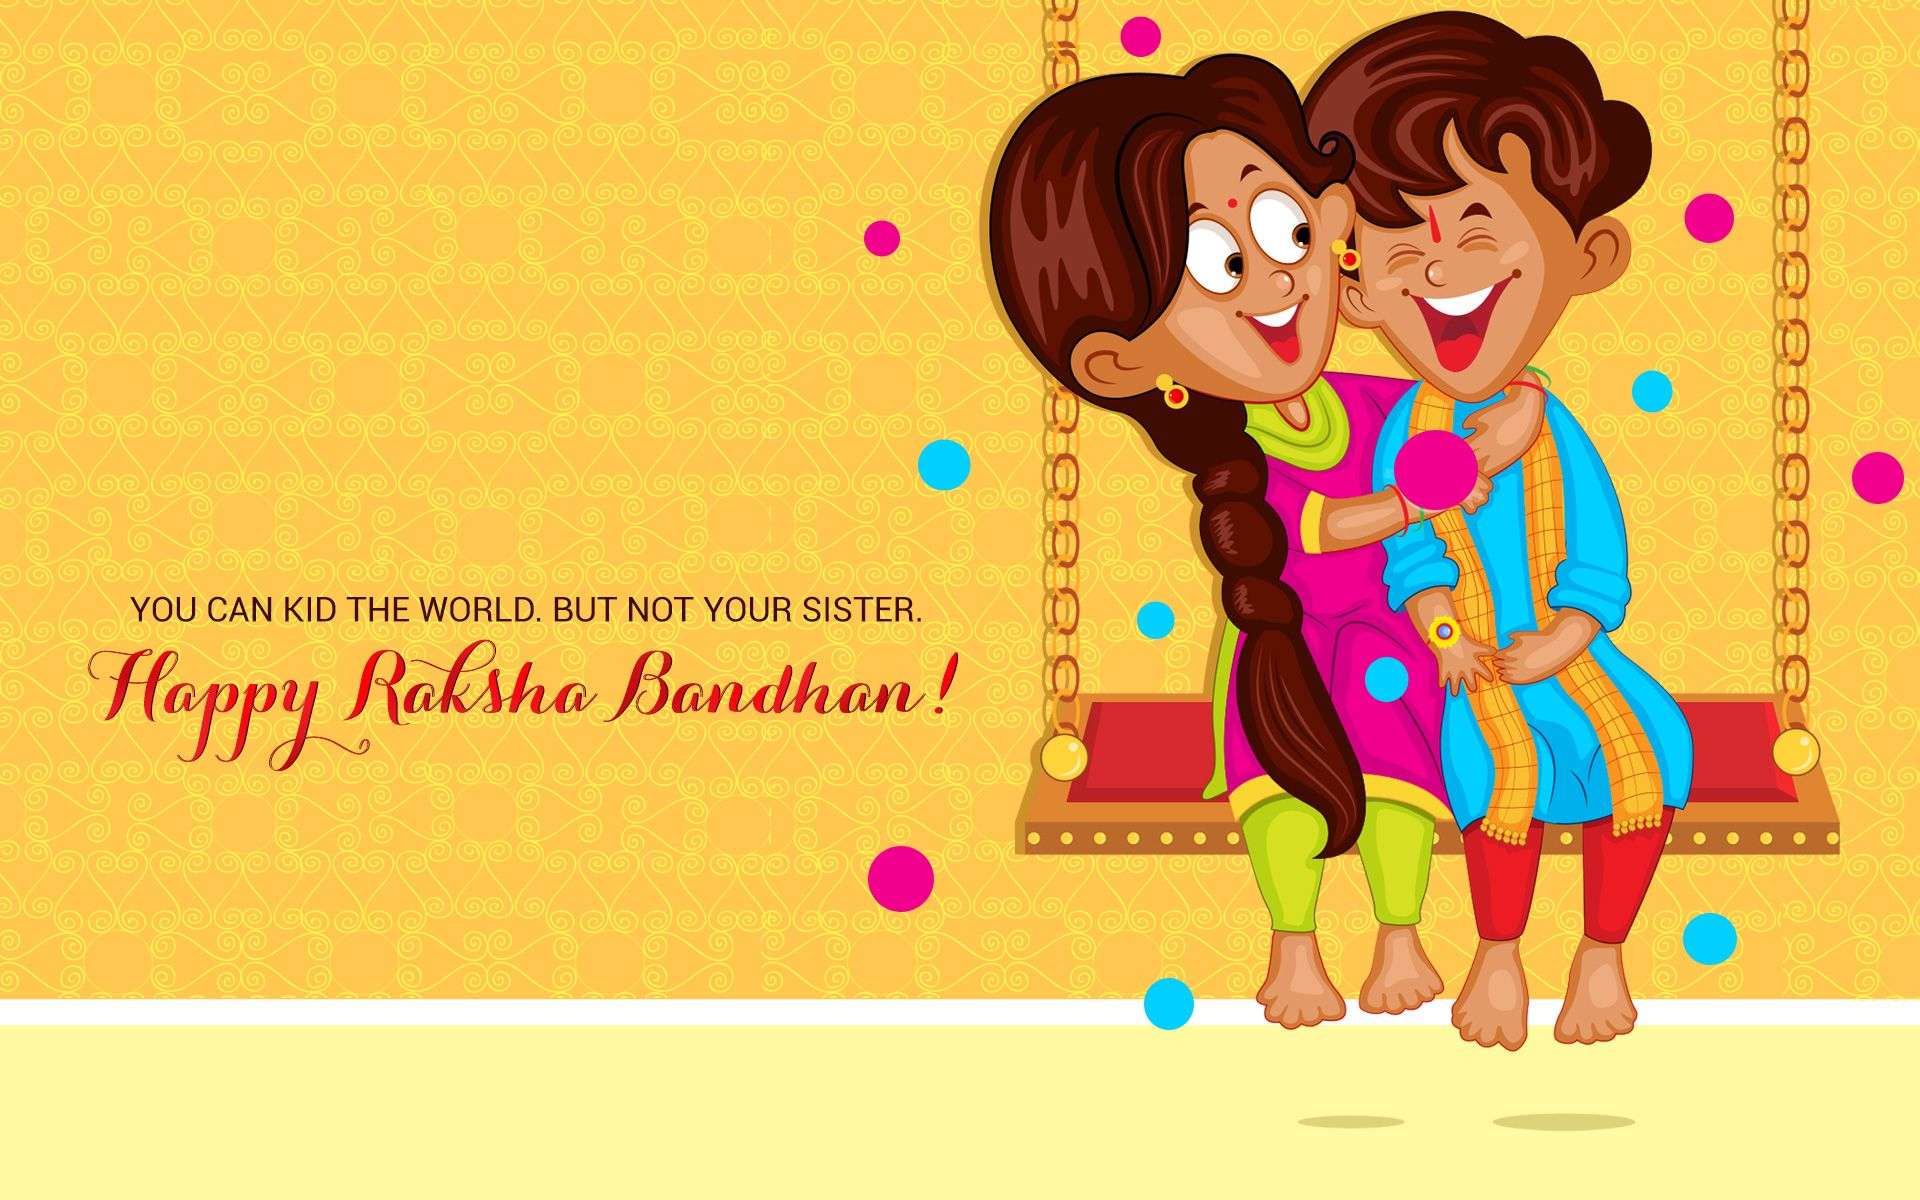 Sister Love Images Wallpaper : Rakshabandhan Brother sister HD Wallpaper Happy Raksha Bandhan , Rakhi, Brother. Sister, Love ...